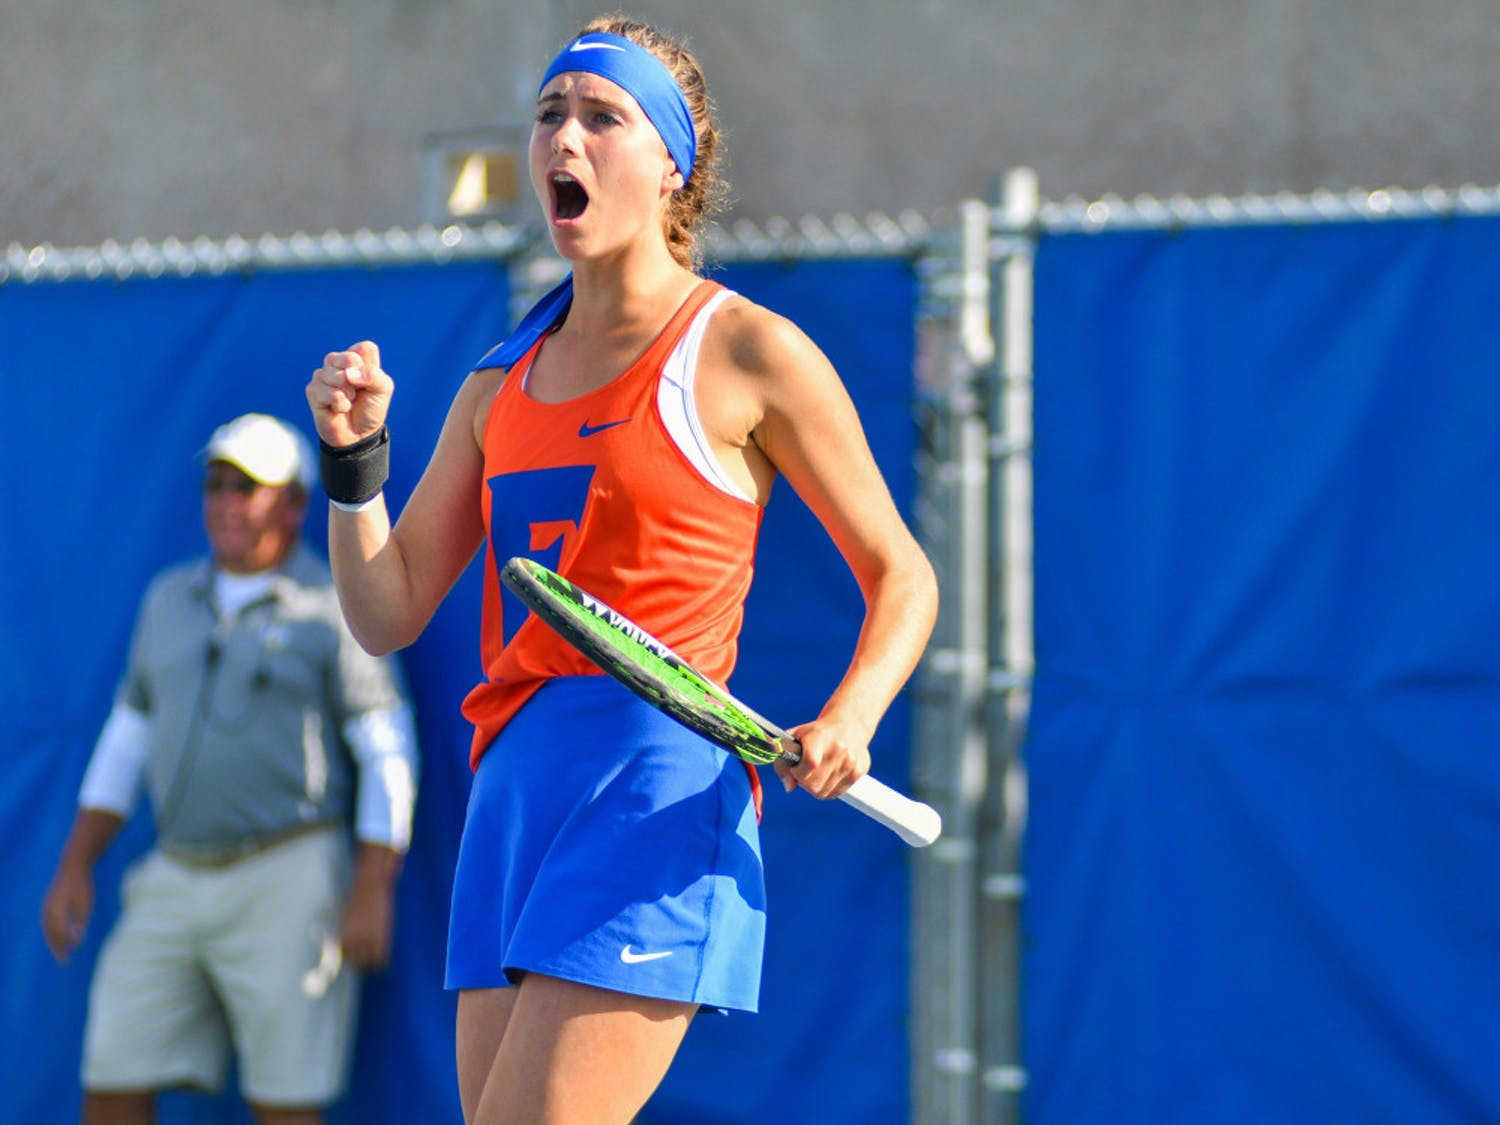 Florida sophomore Ida Jarlskog holds an 11-3 record on Court 1 this season. She will likely face Michigan's Kate Fahey on Thursday.